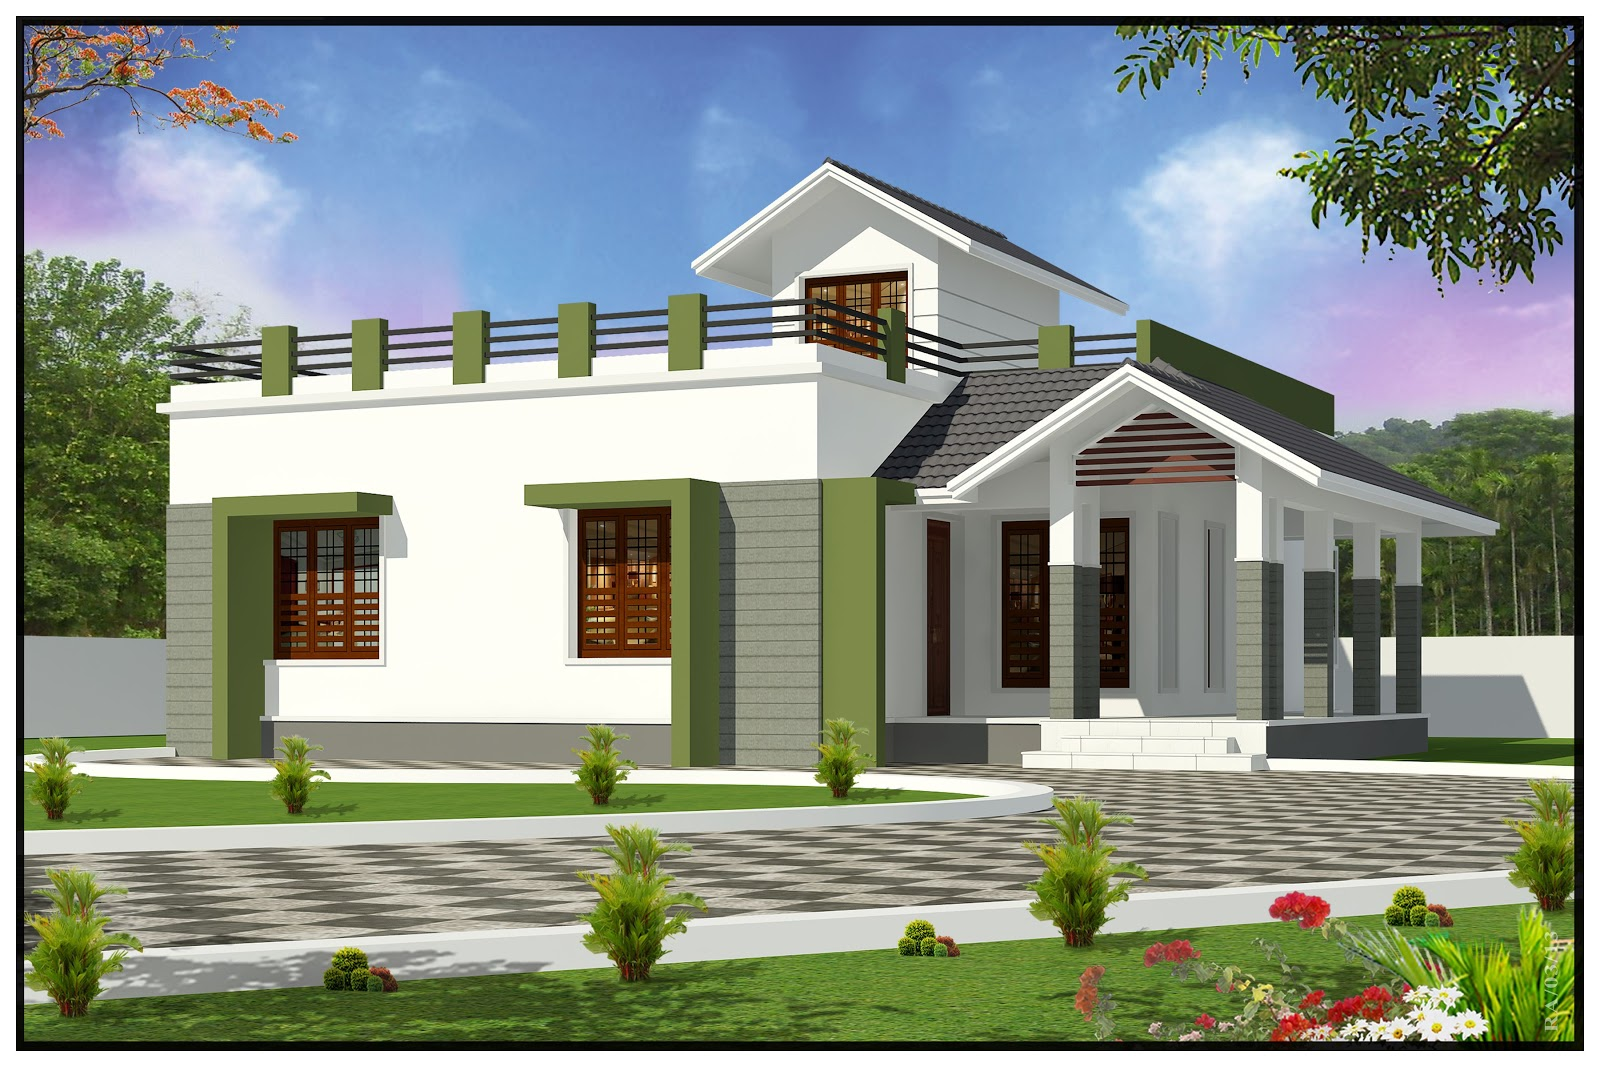 BEAUTYFUL HOME DESIGNING ~ ENGINEERING DAIRY